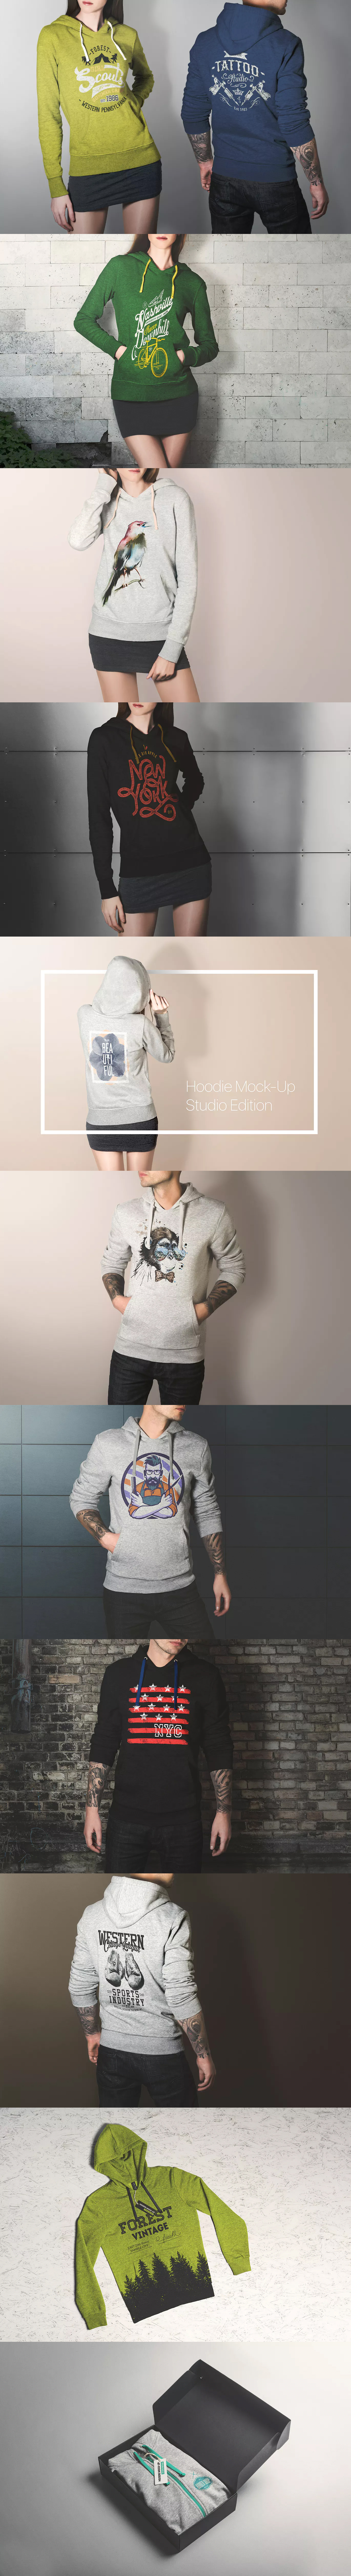 Download Hoodie Mock Up Studio Edition By Genetic96 On Envato Elements Envato Mockup Elements